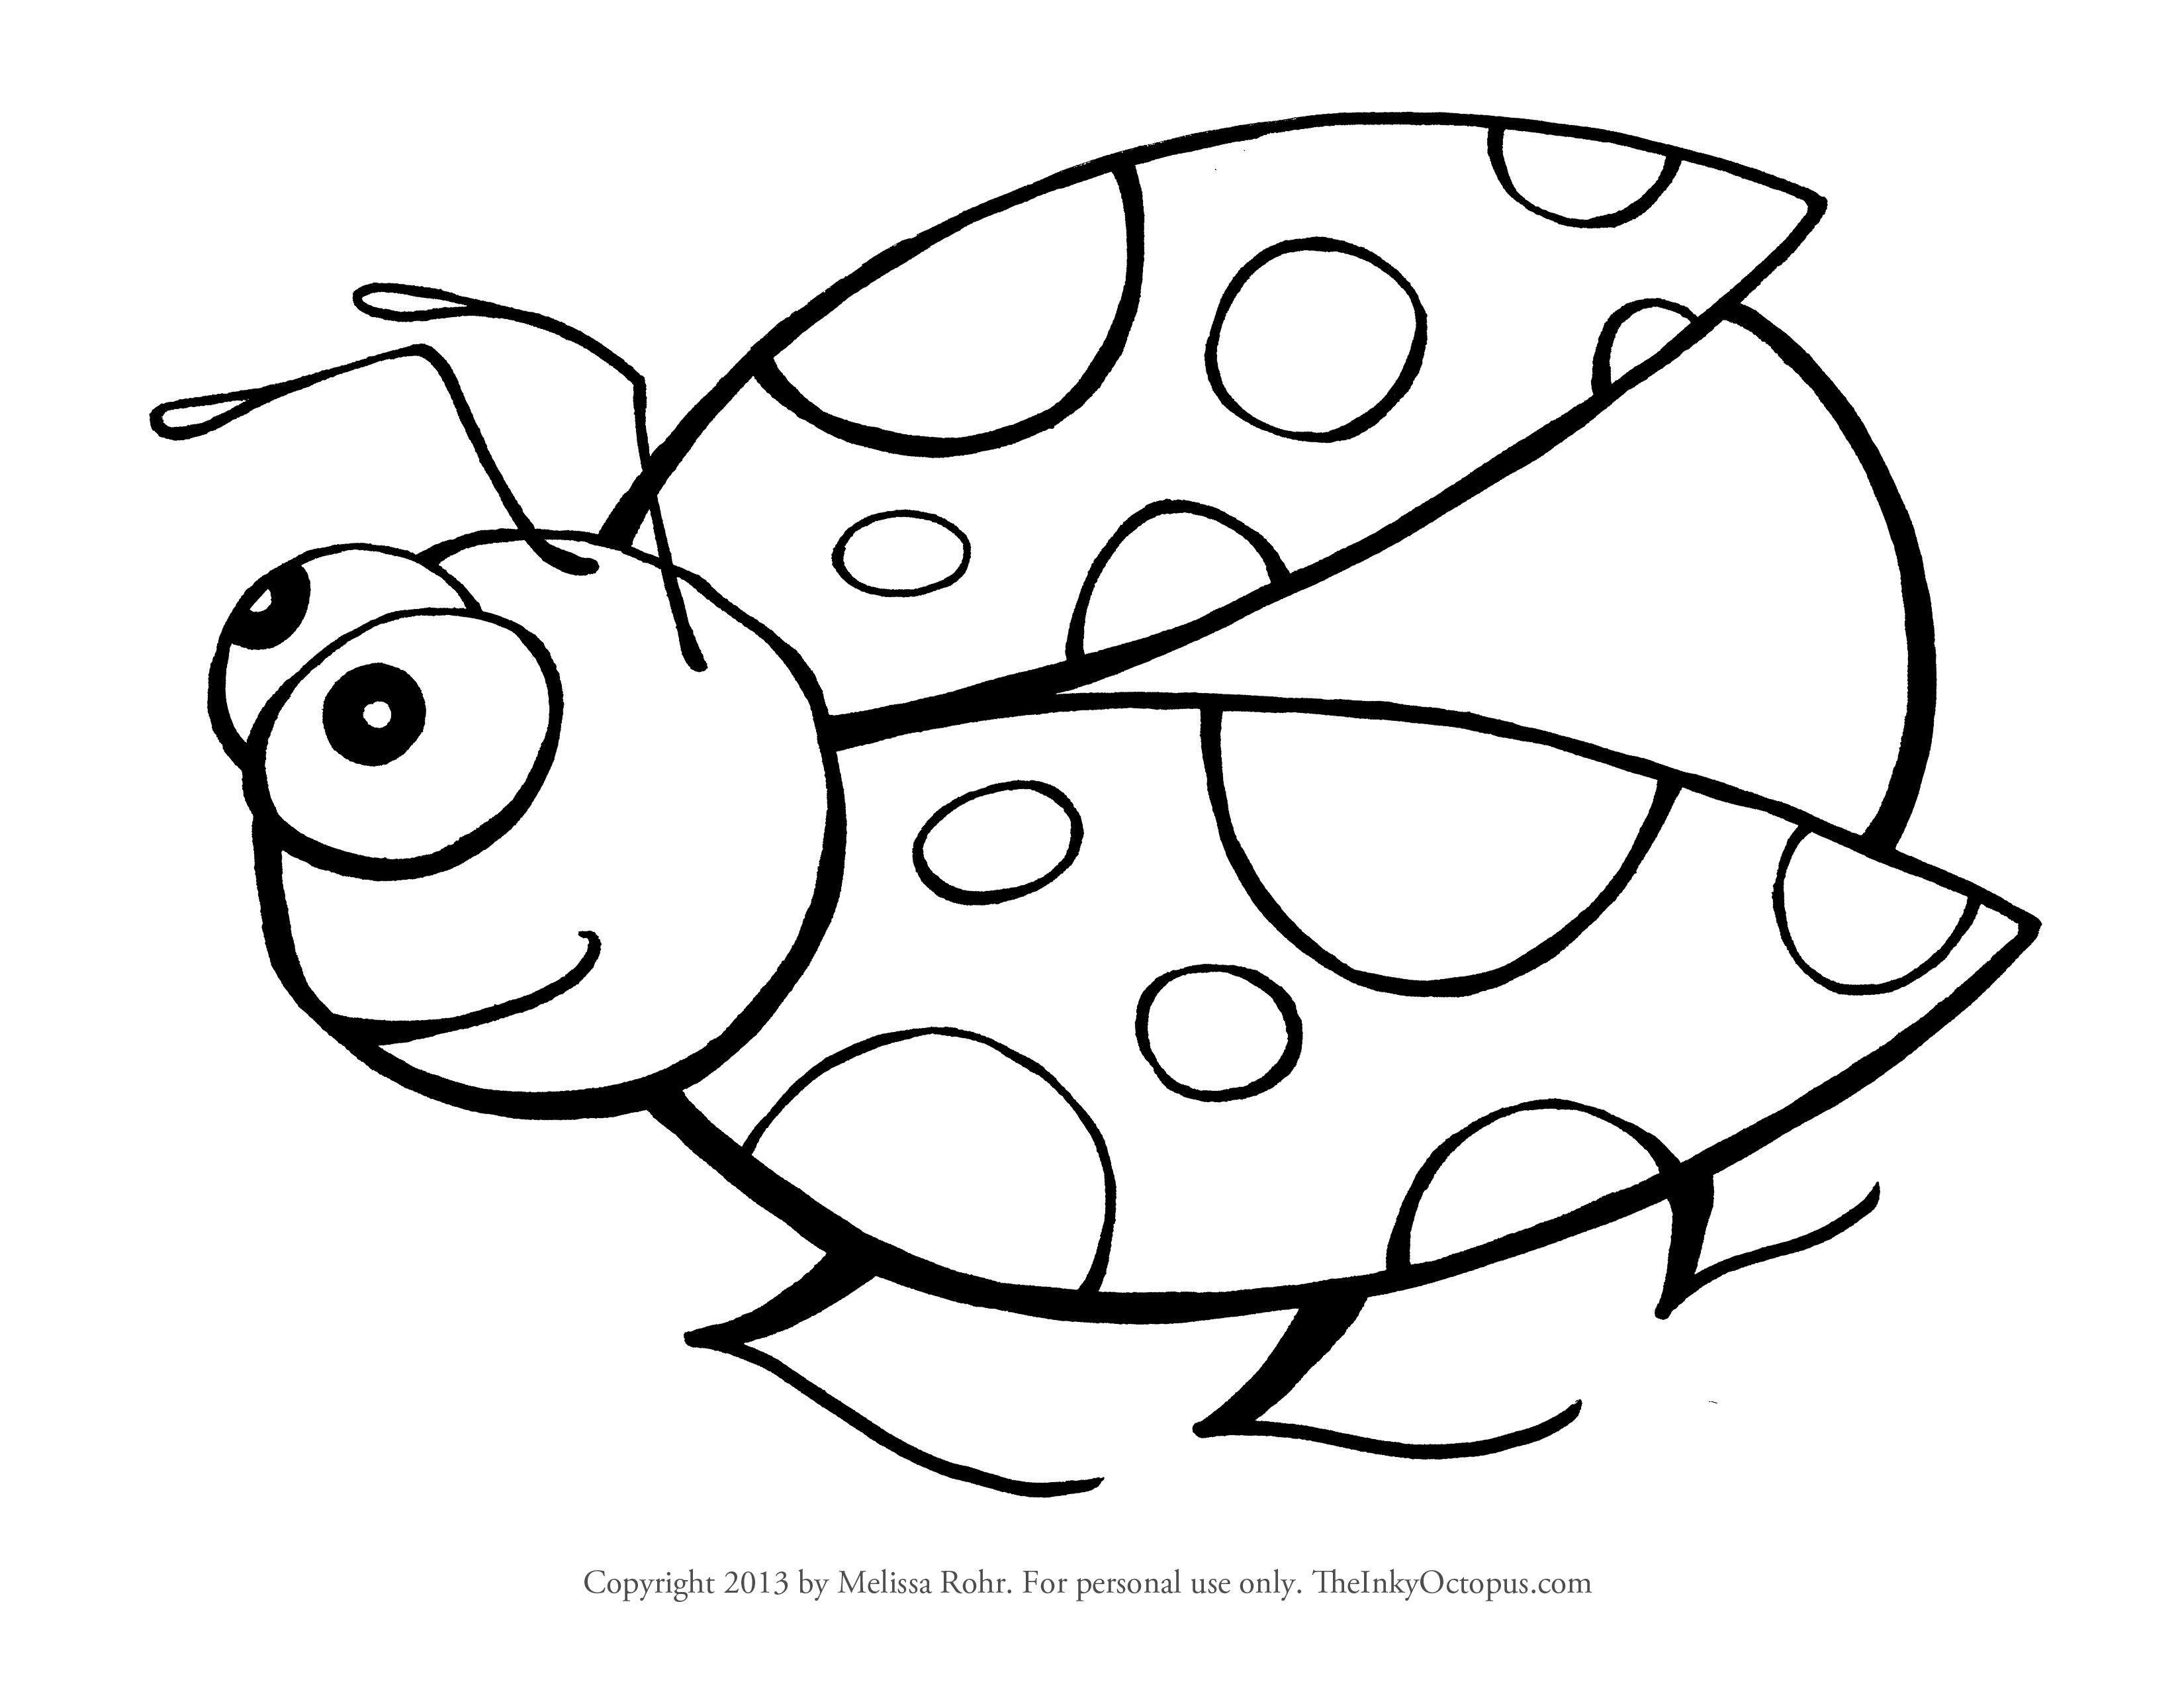 Ladybug clipart colouring. Cute coloring pages free